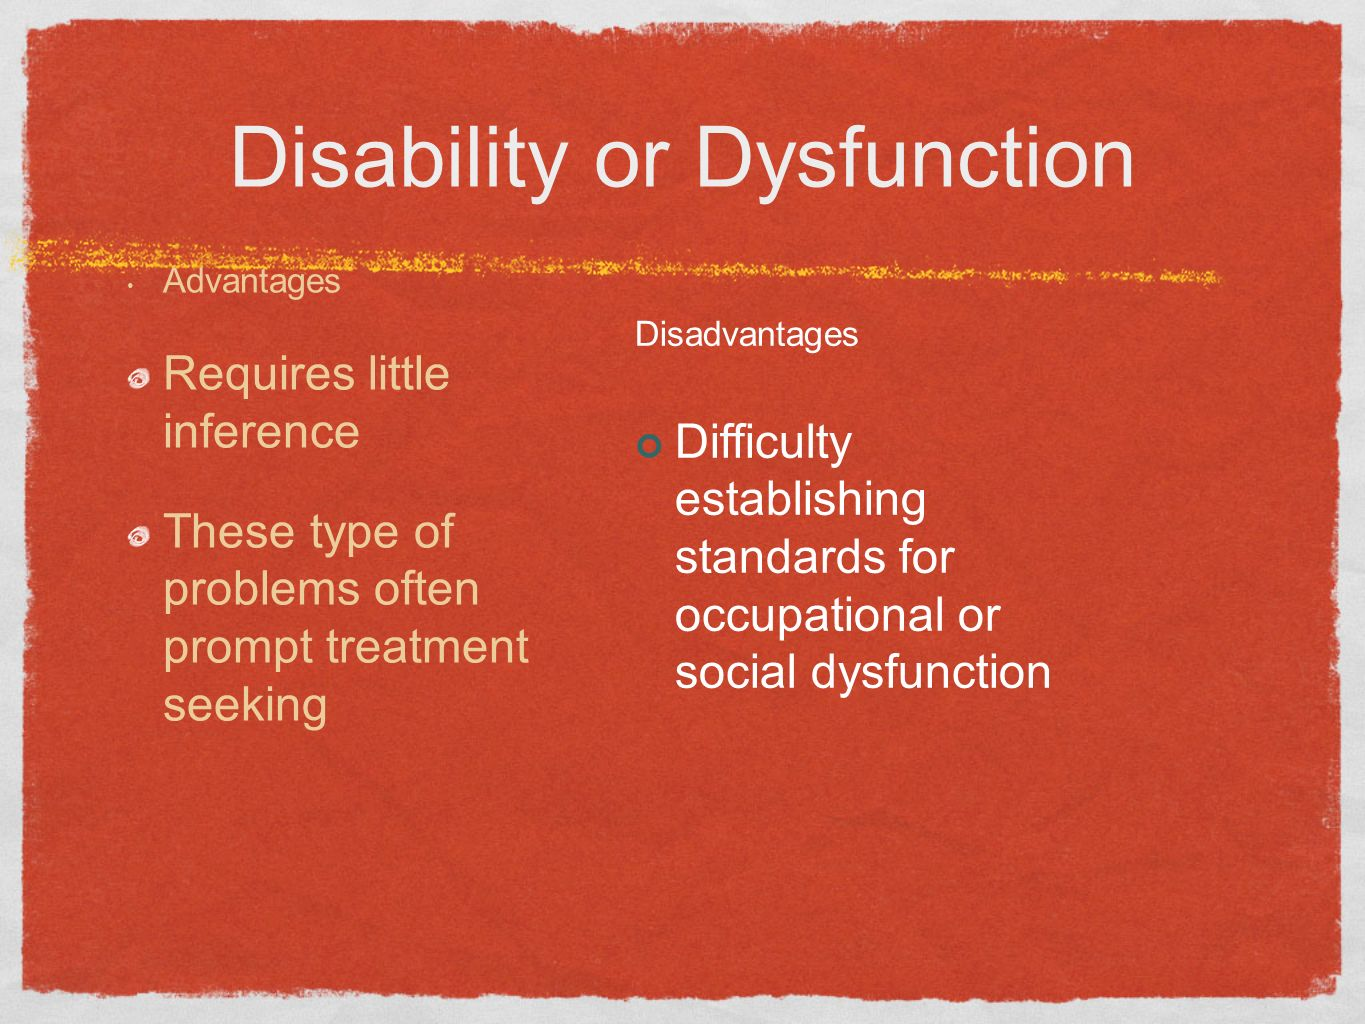 Disability or Dysfunction Advantages Requires little inference These type of problems often prompt treatment seeking Disadvantages Difficulty establis